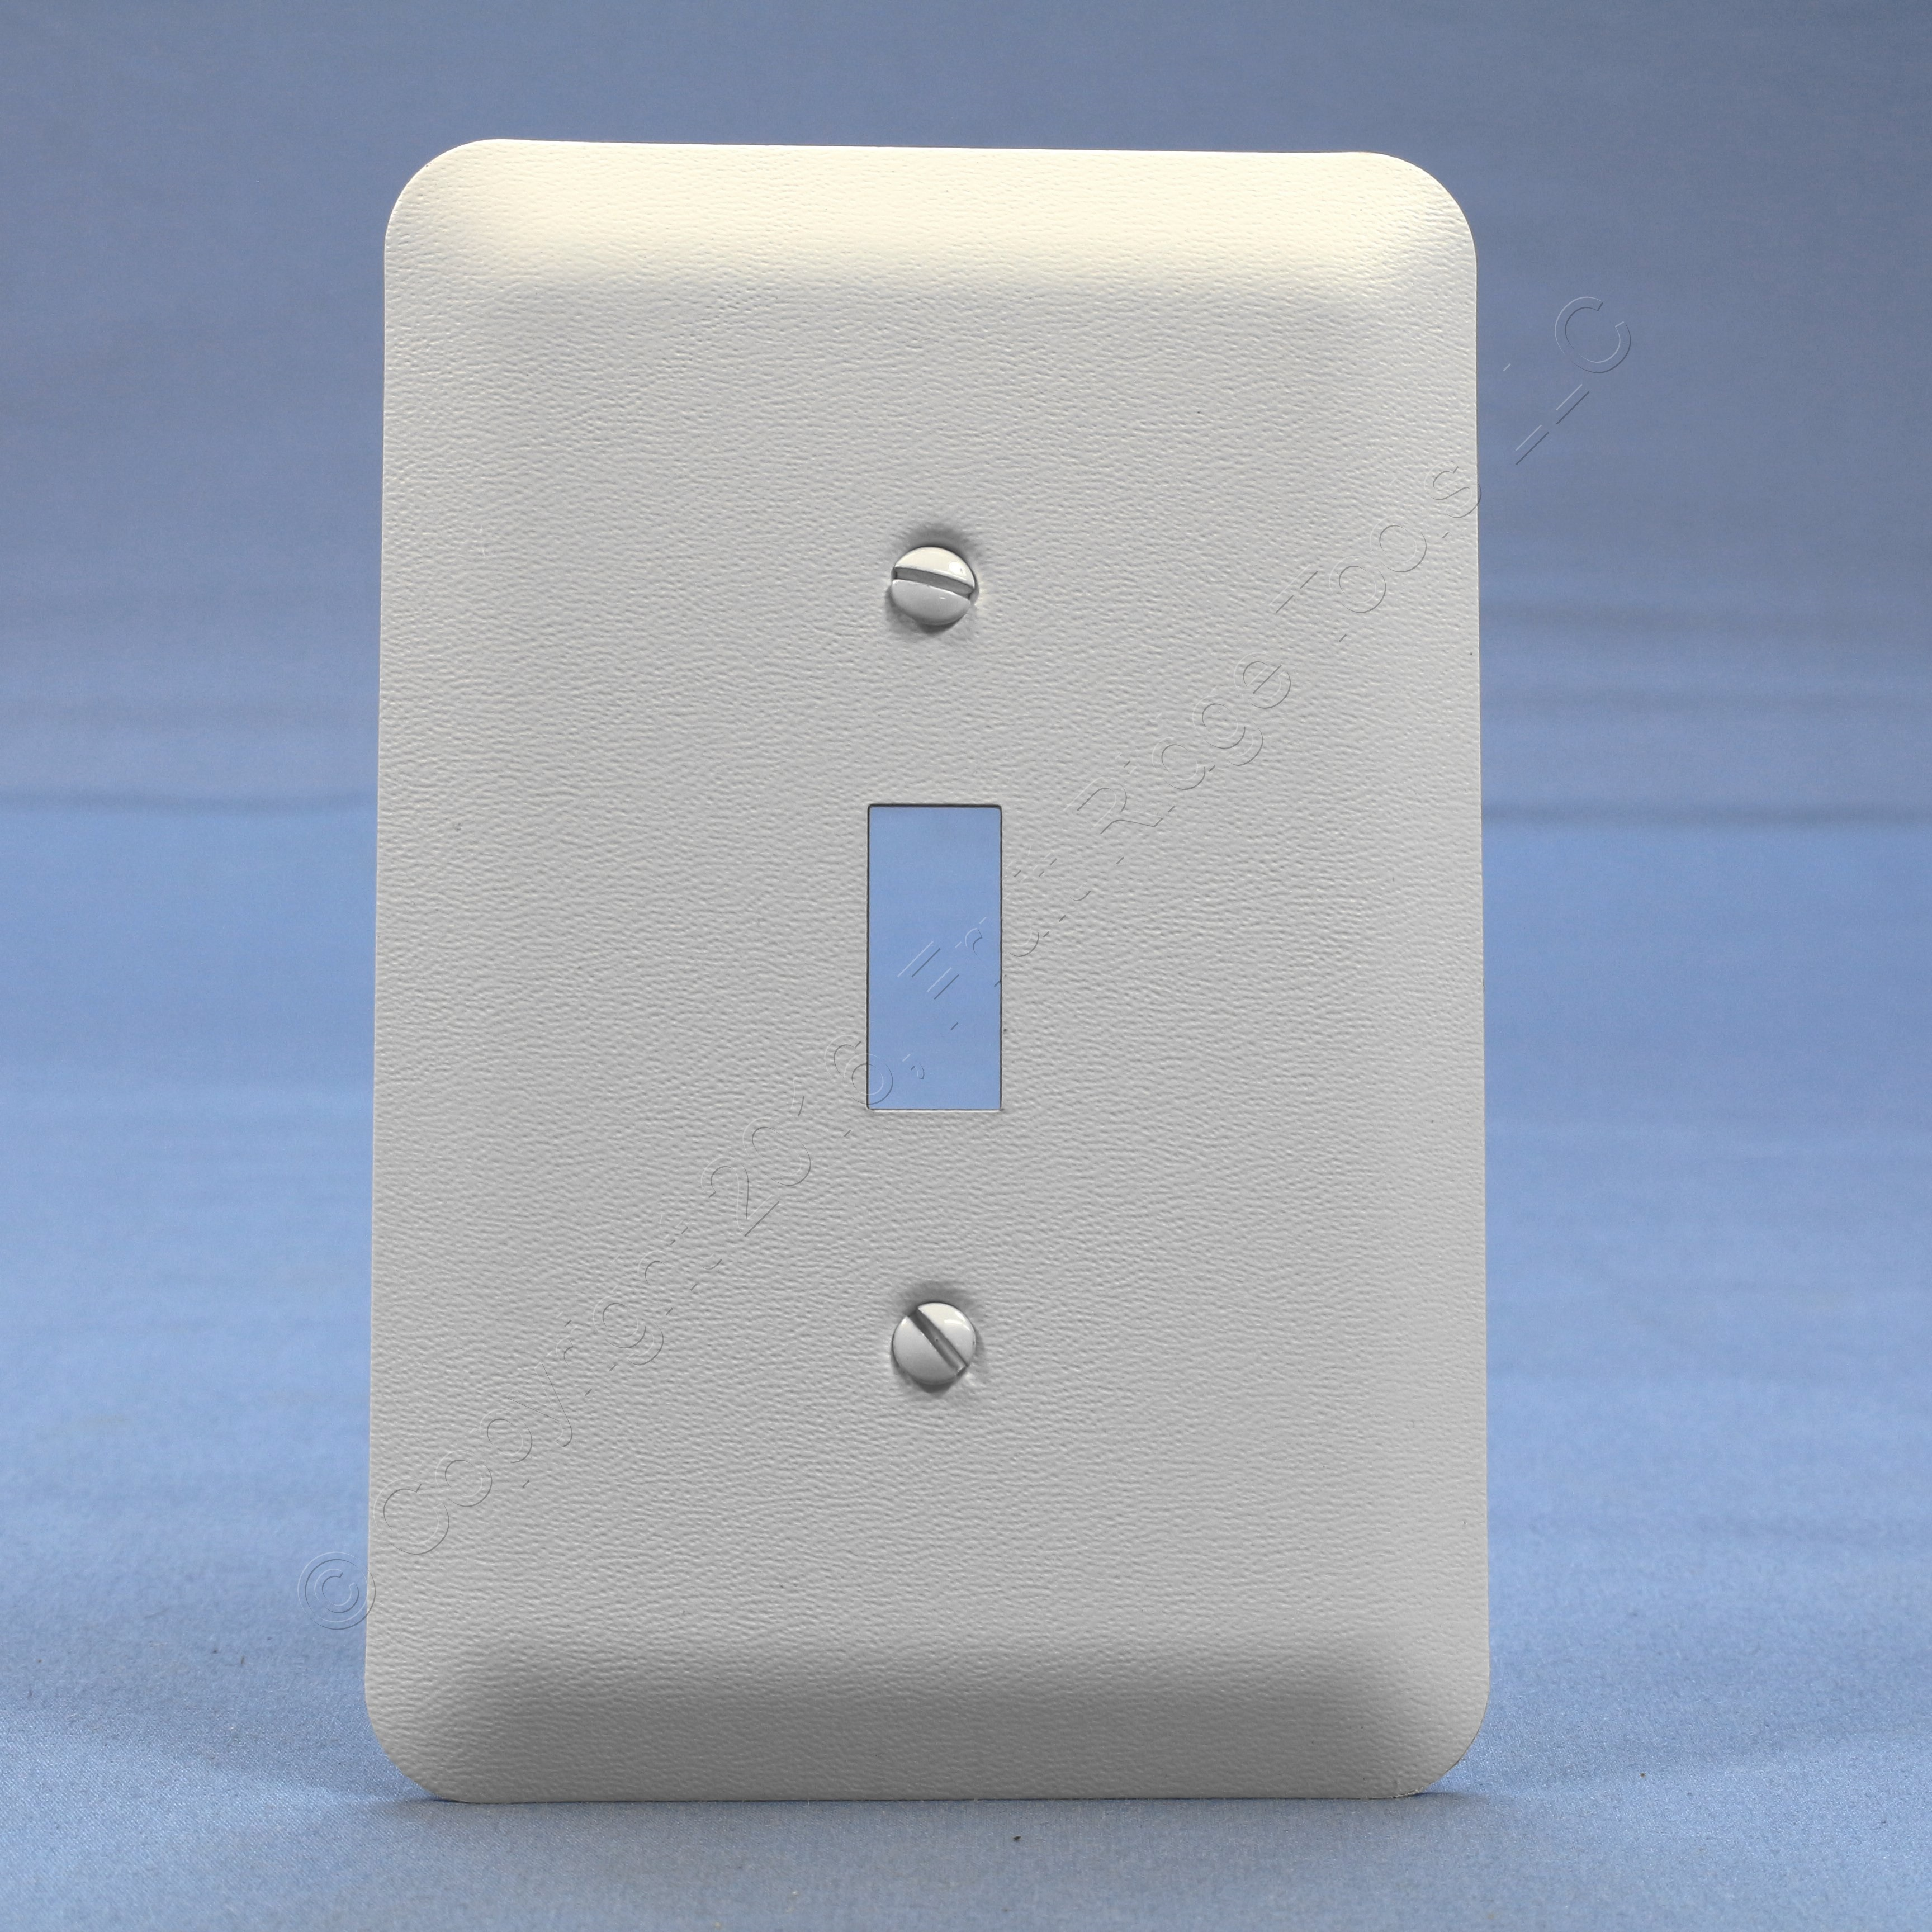 Metal Electrical Outlet Covers Oversized Outlet Covers: Leviton Decorative Metal Themed Painted Patterned Toggle